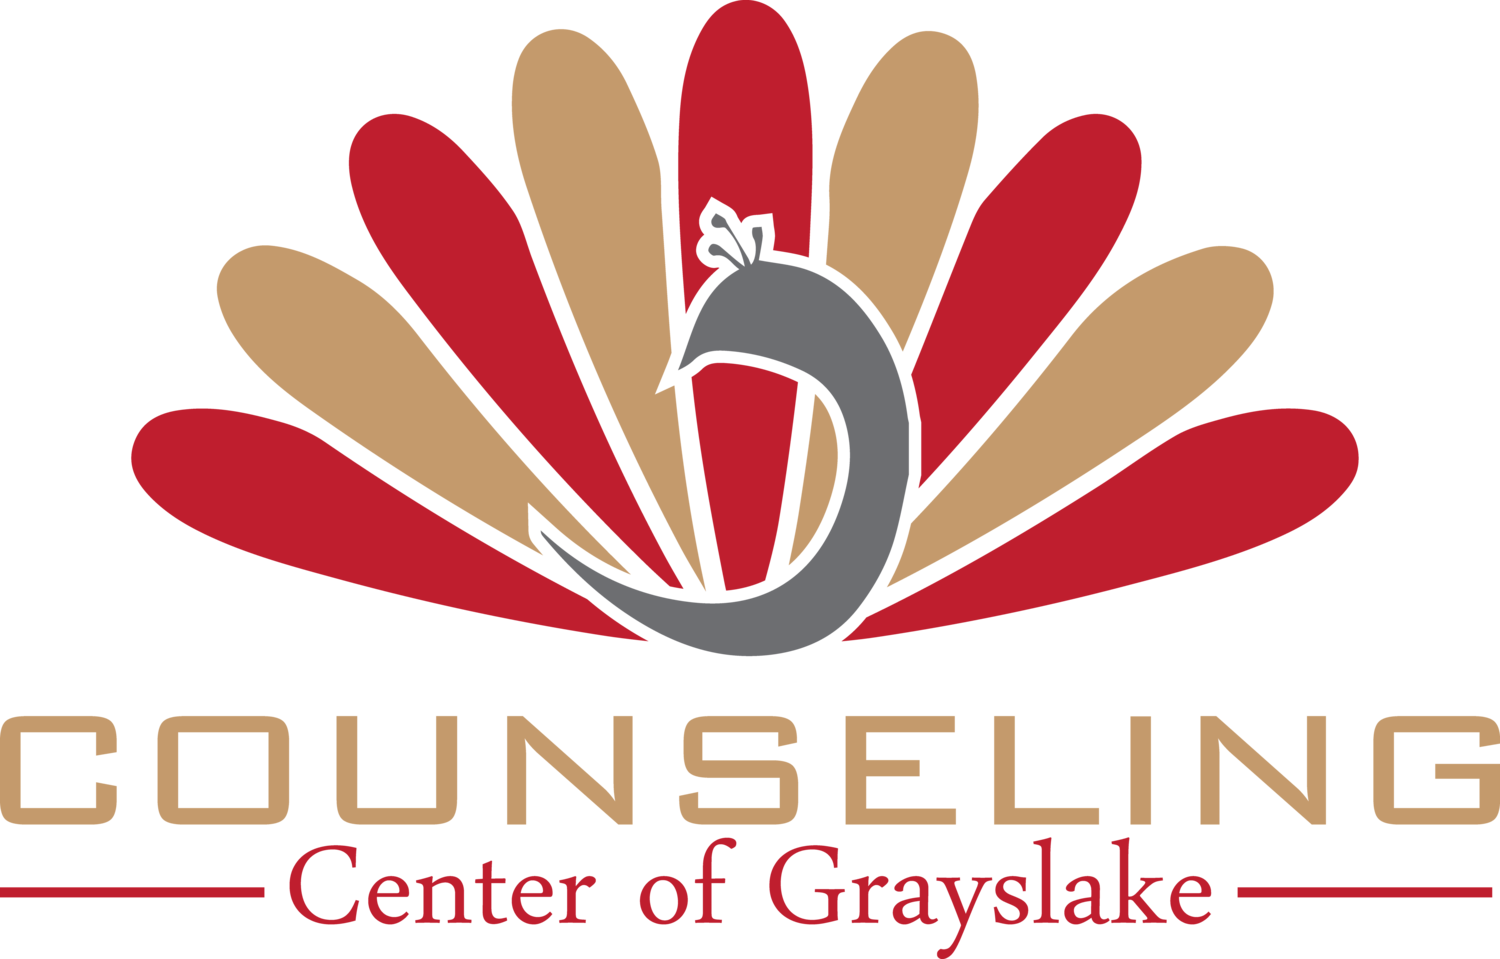 Counseling Center of Grayslake